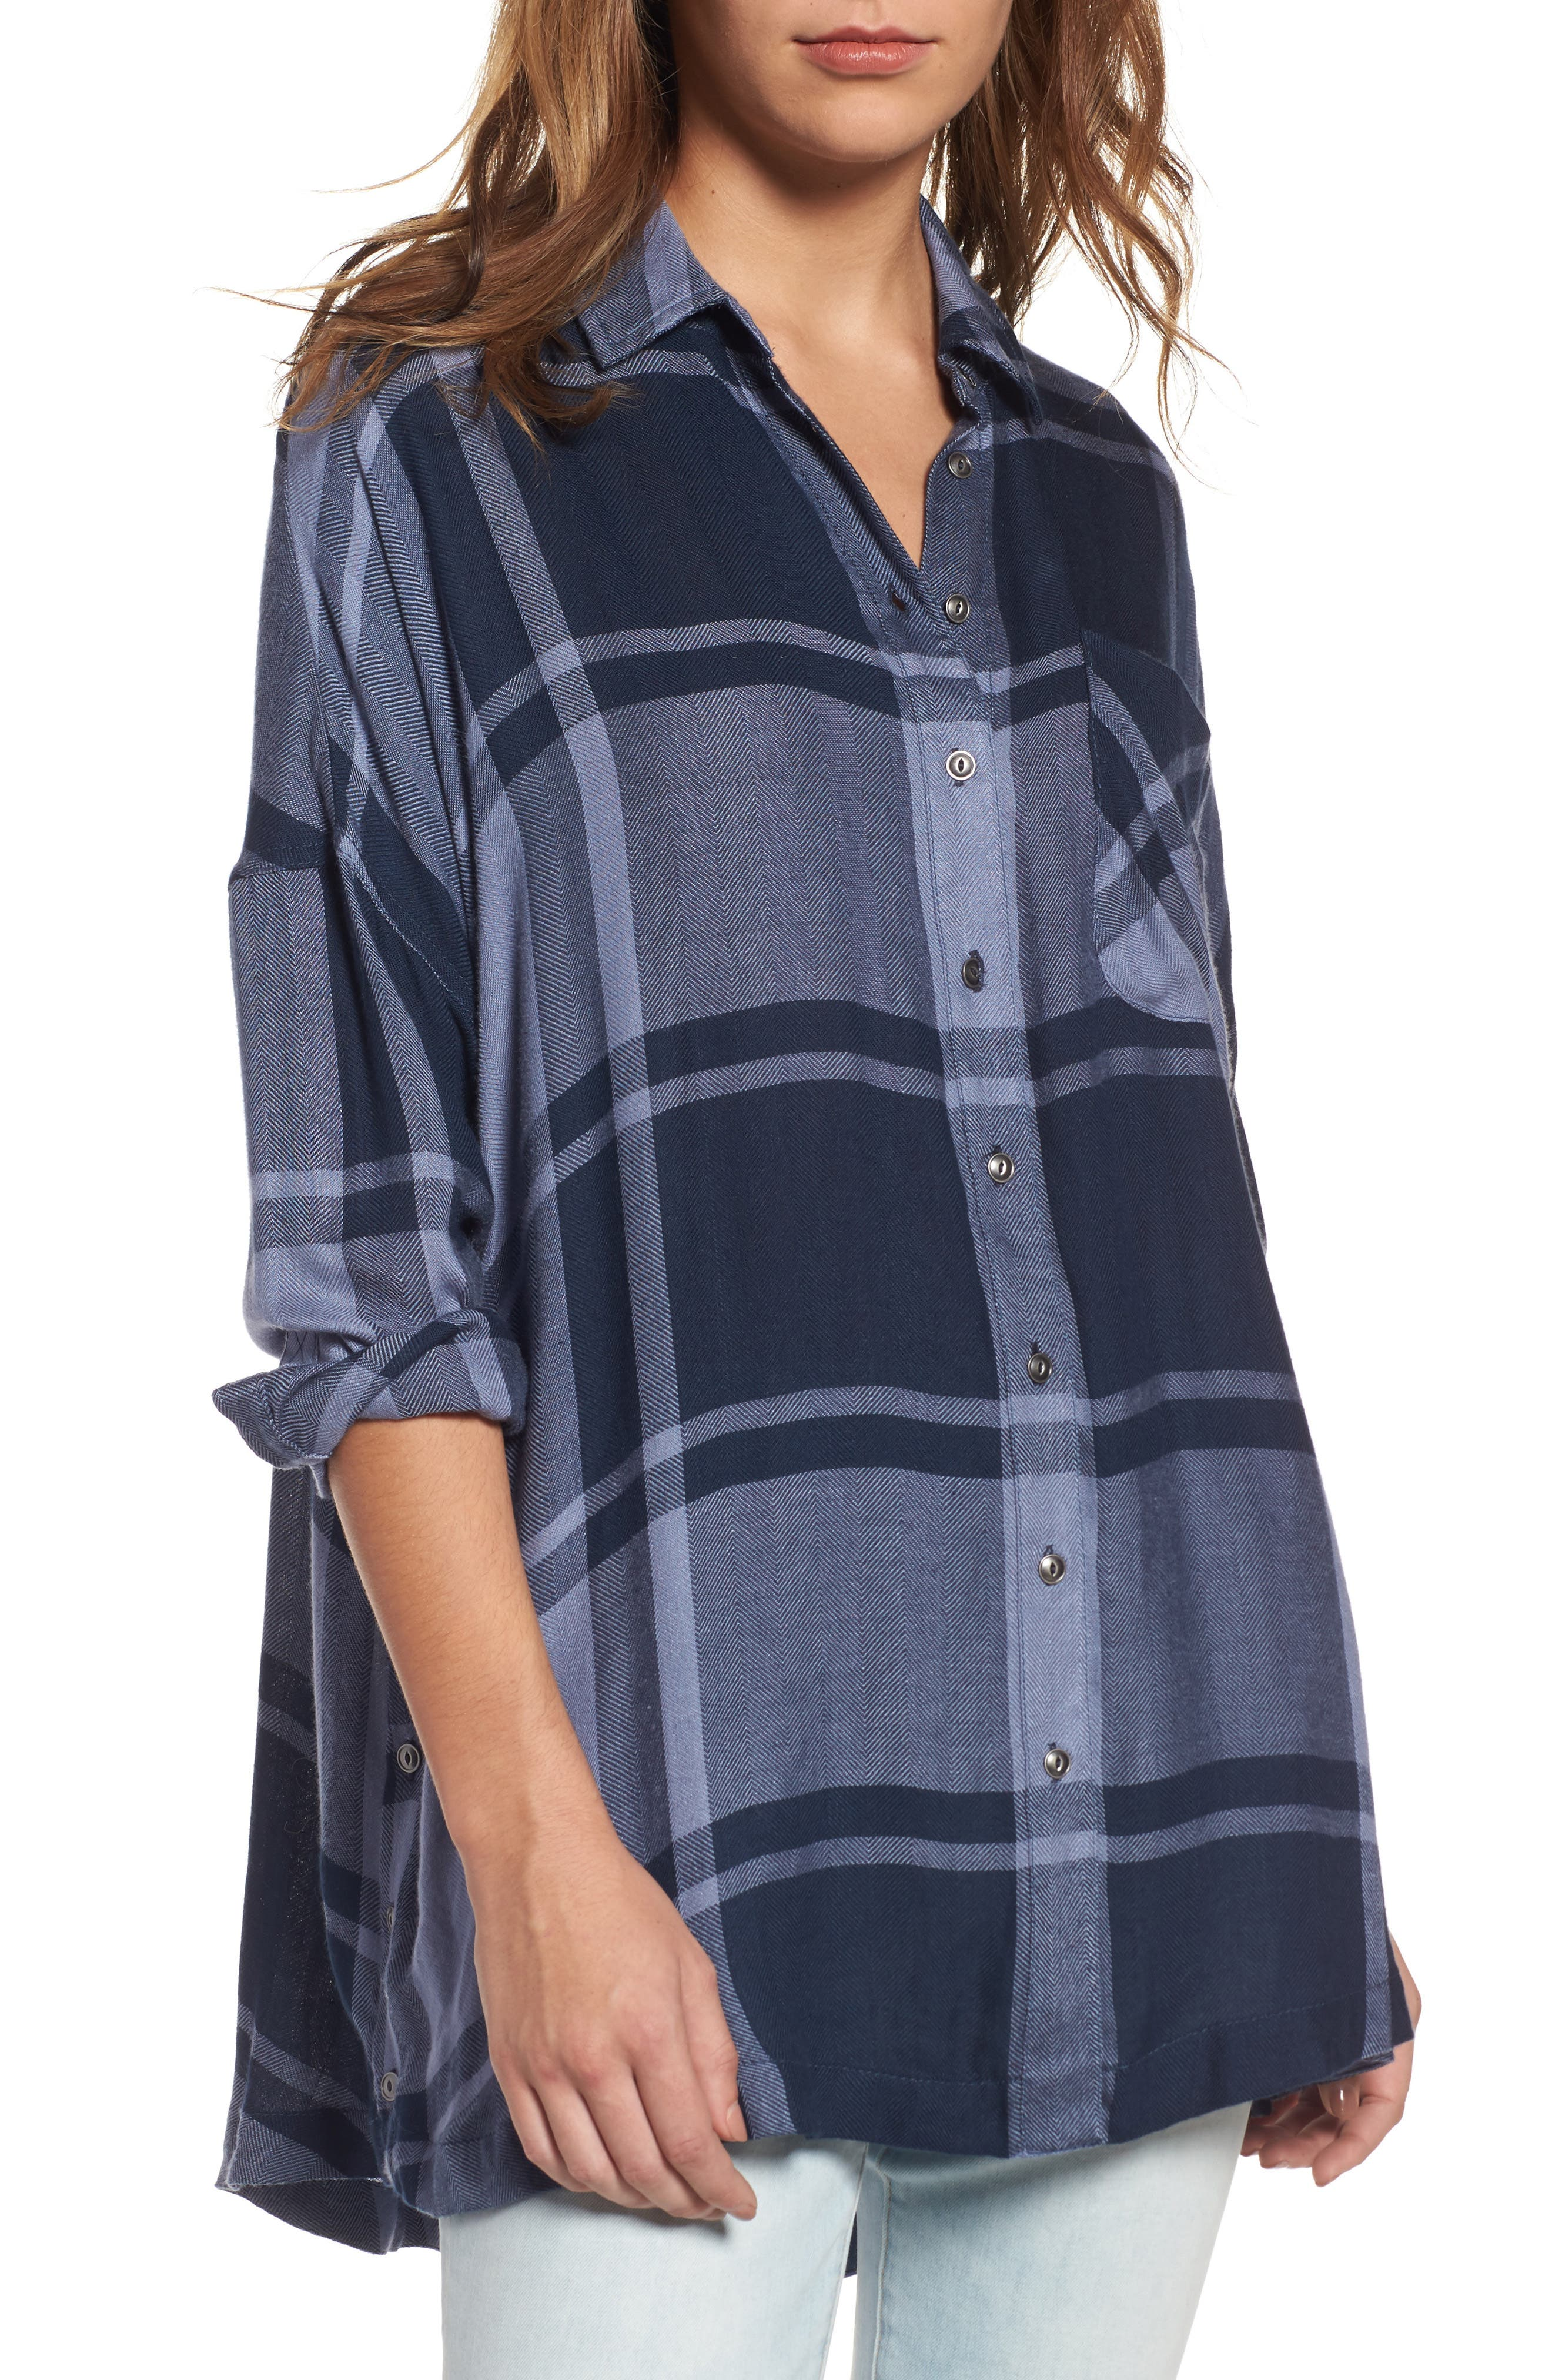 Free People Oversized Plaid Tunic